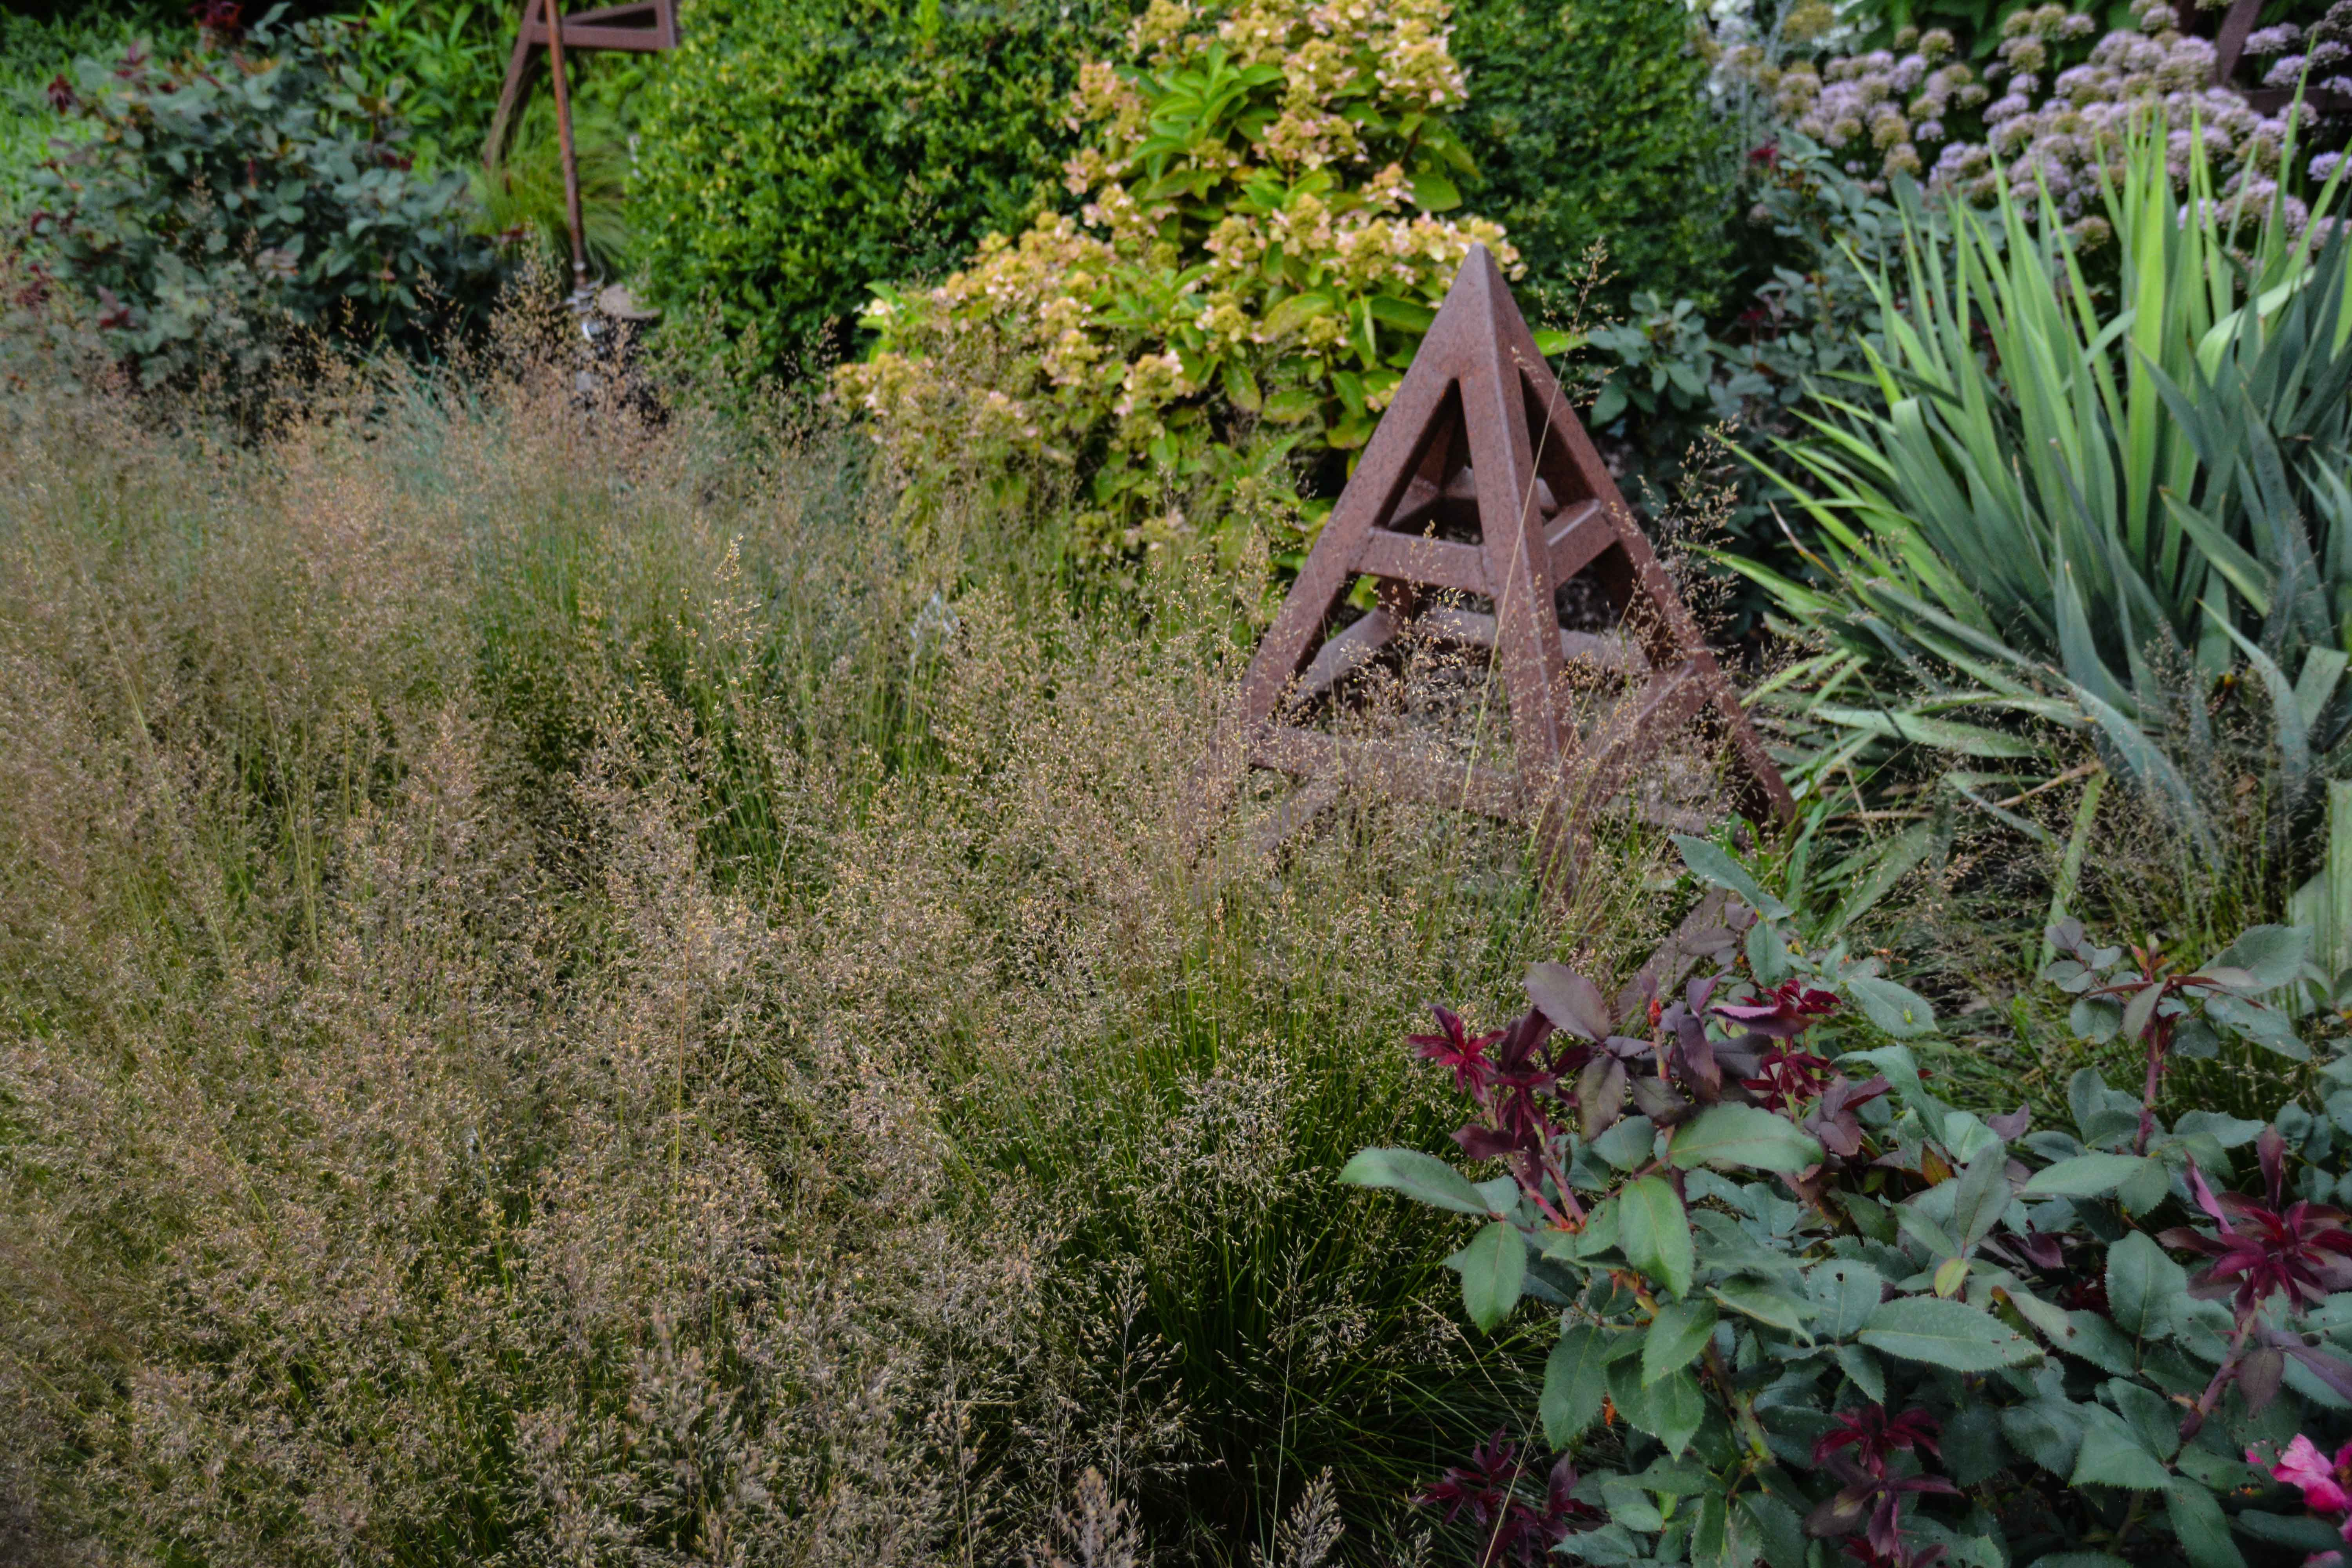 Sporobolus heterolepis, 7 Essential Ornamental Grasses, Thinking Outside the Boxwood